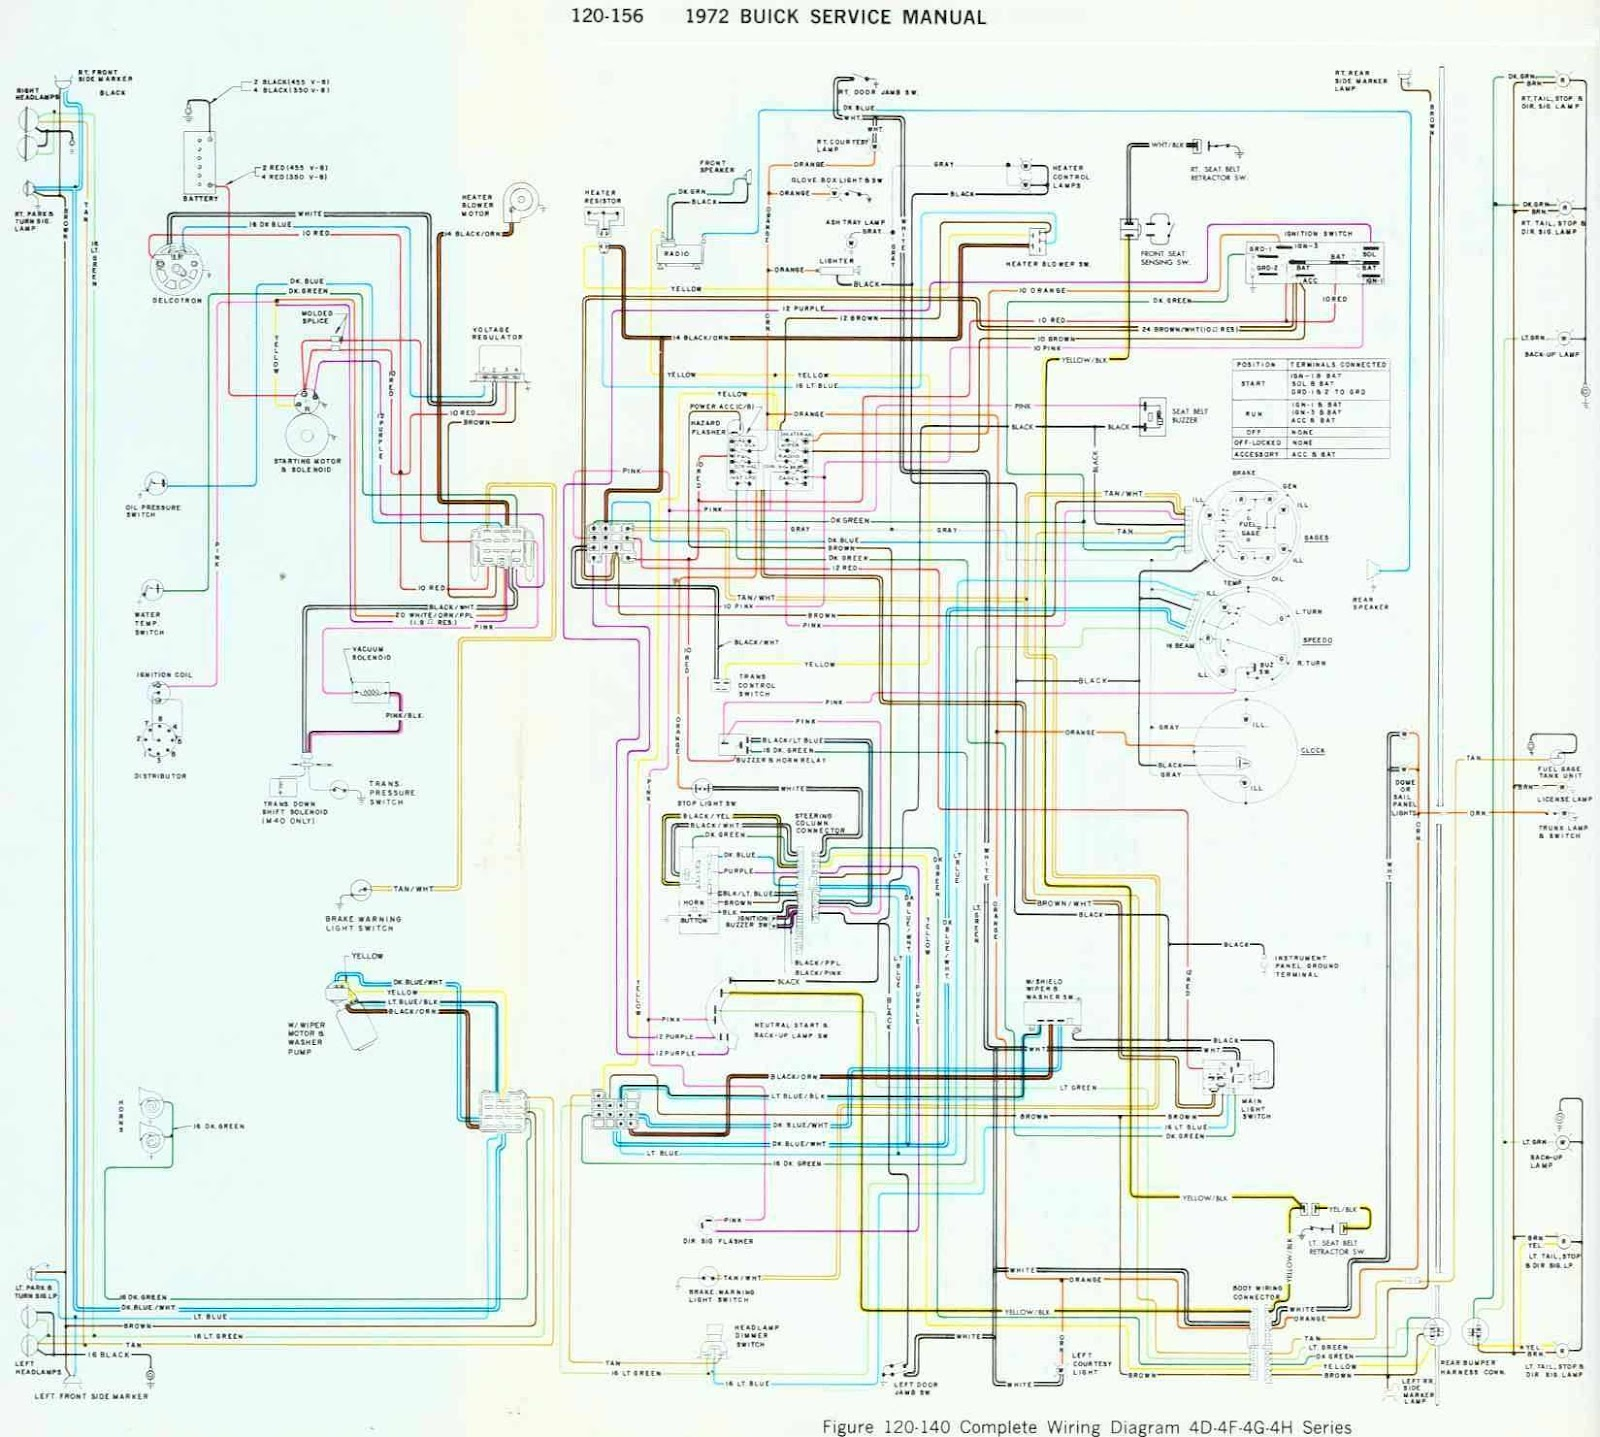 Volvo Penta 4 3 Gl Wiring Diagram besides 305344 Ac Not Working moreover 7e41m2 additionally 6ris3 Hyundai Elantra Gls 2002 Hyundai S Fuel Pump Cuts Off besides Direct diesel injection system control unit repairs. on vw electrical schematics